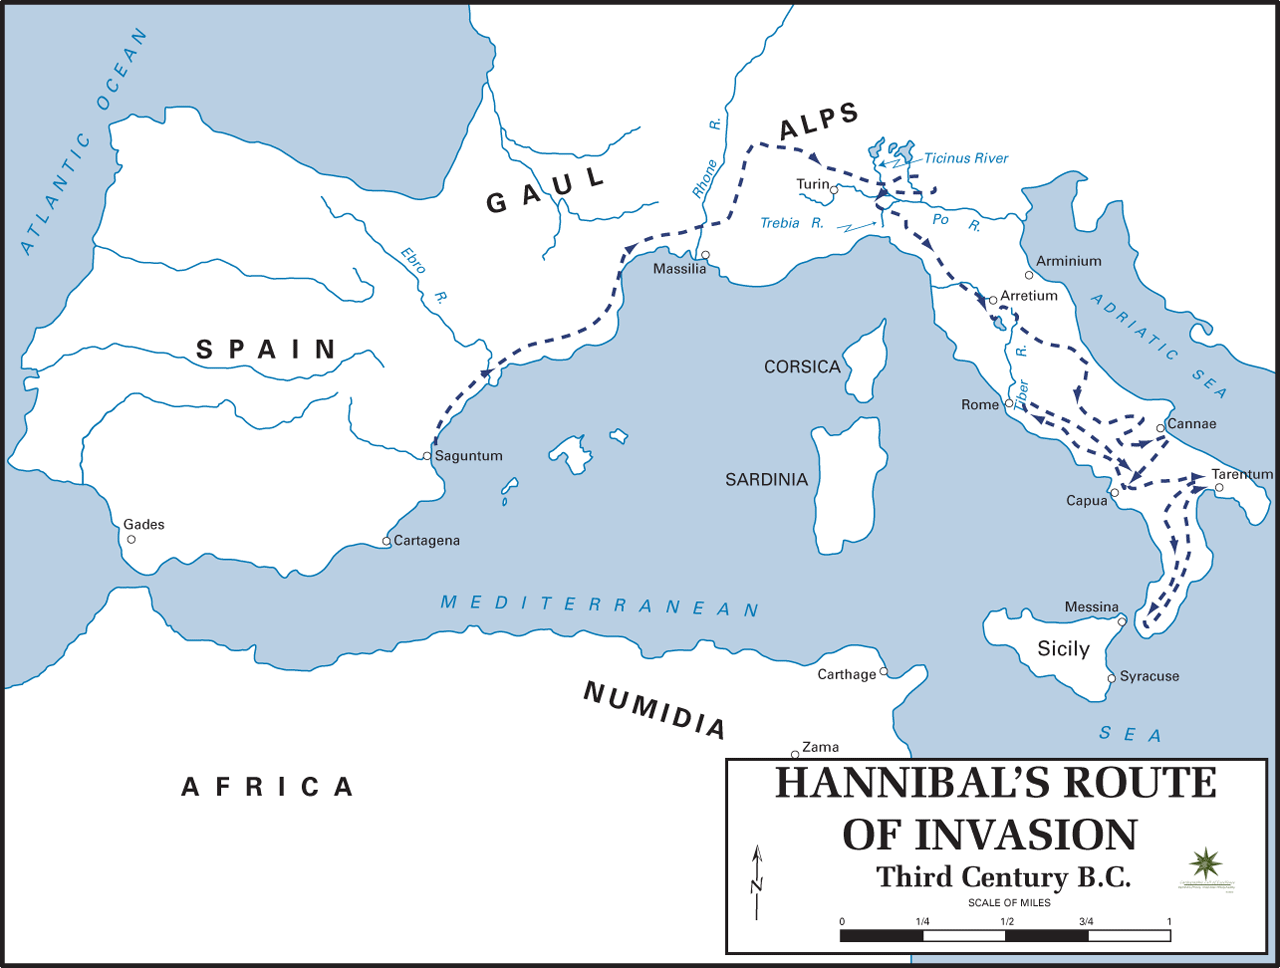 Second Punic War - Hannibals Invasion Route